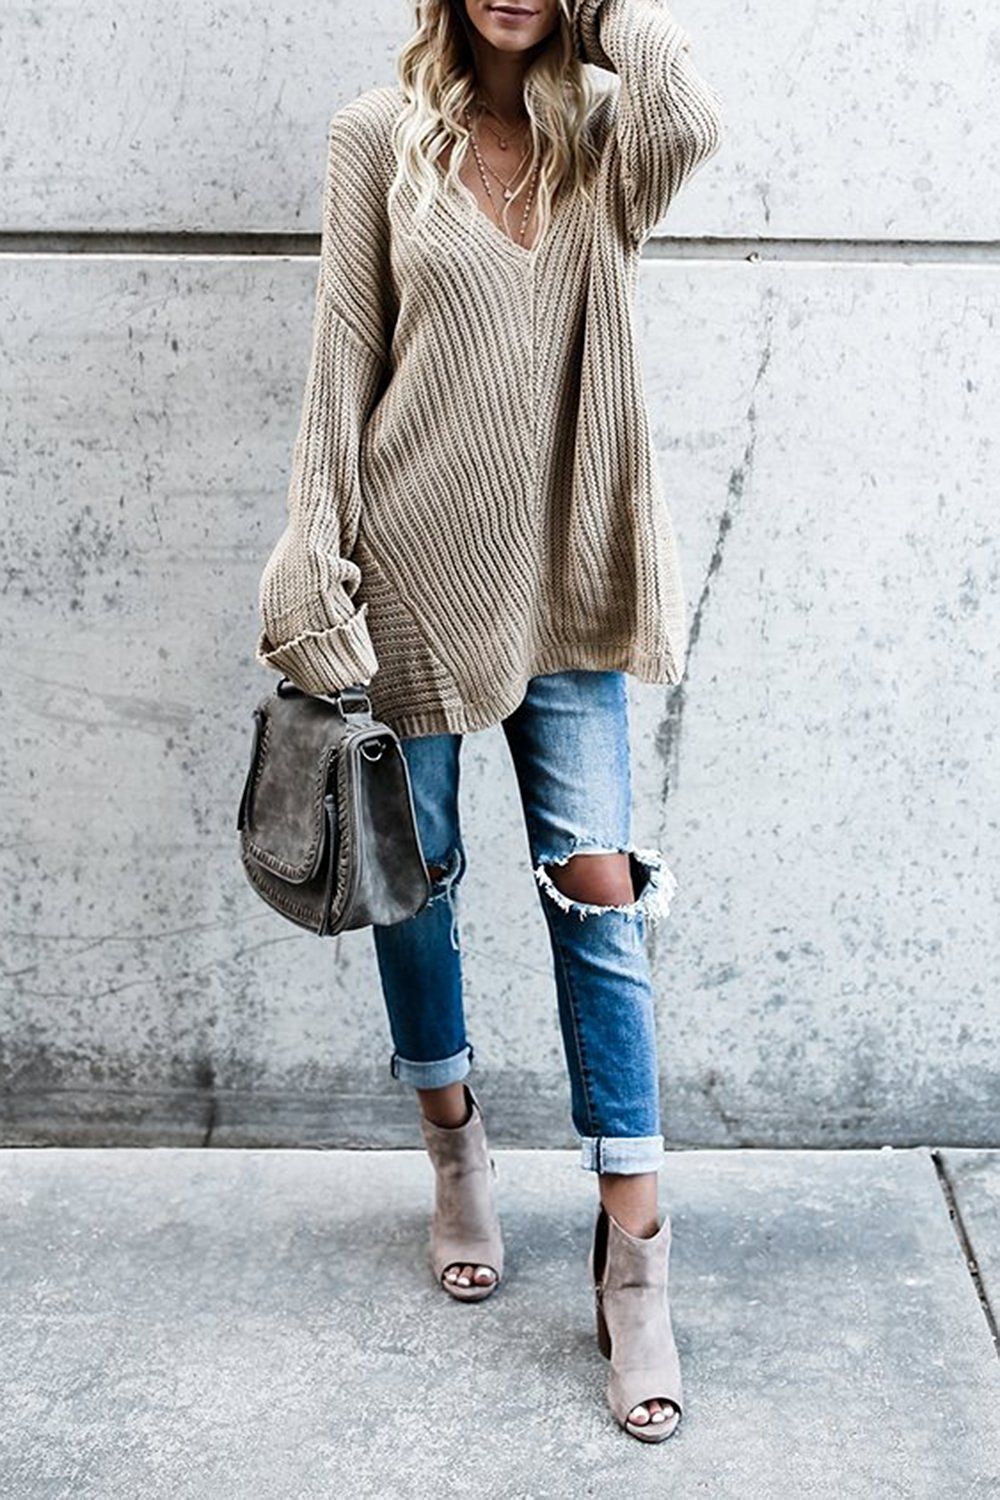 c76f7a390146 20+ Amazing Outfit Ideas for Wearing Oversized Sweaters ...